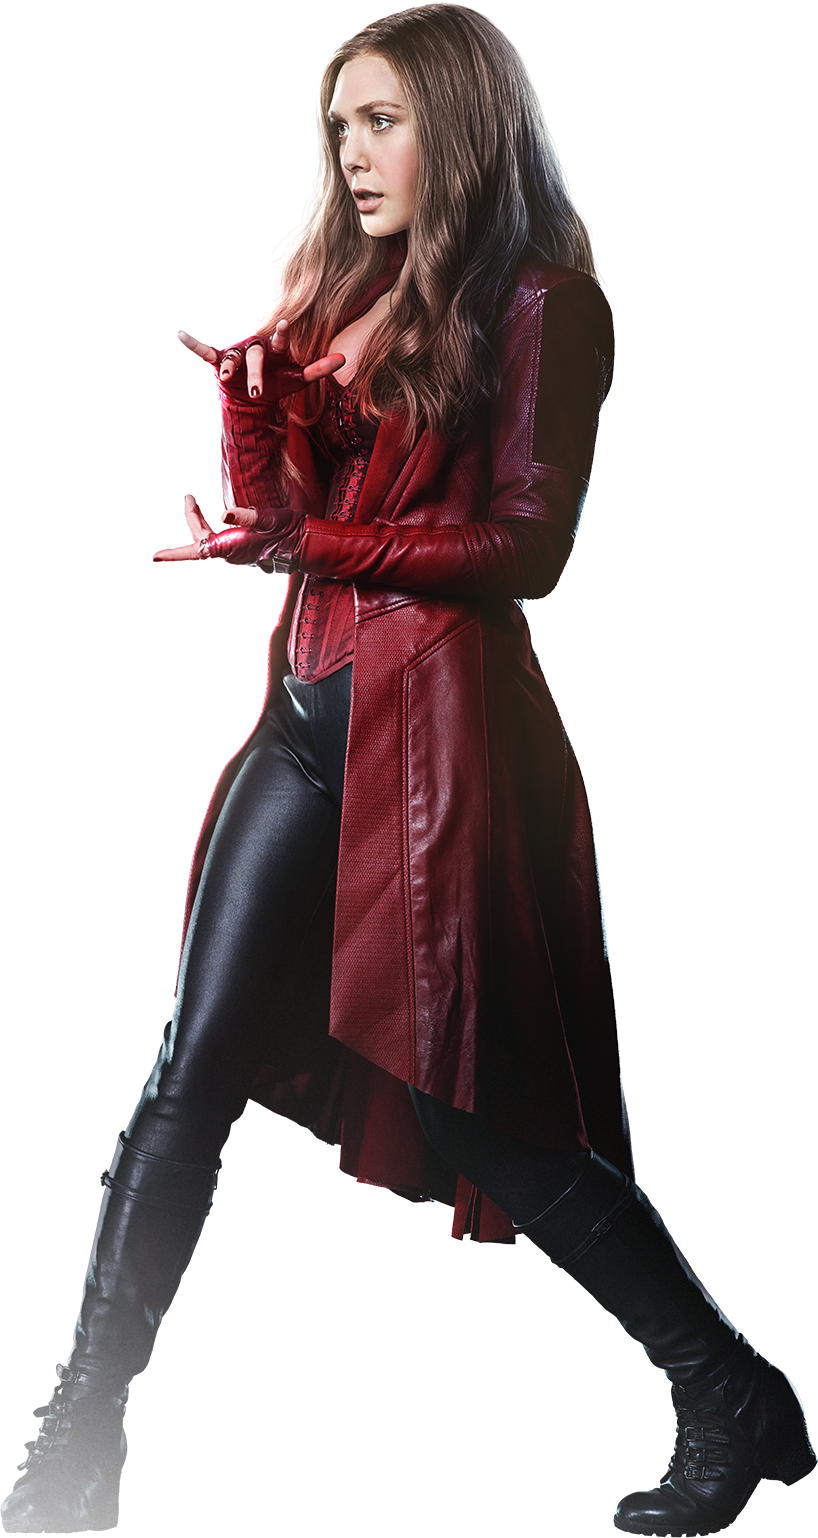 Feiticeira Escarlate | Tumblr | SCARLET WITCH | Pinterest ...